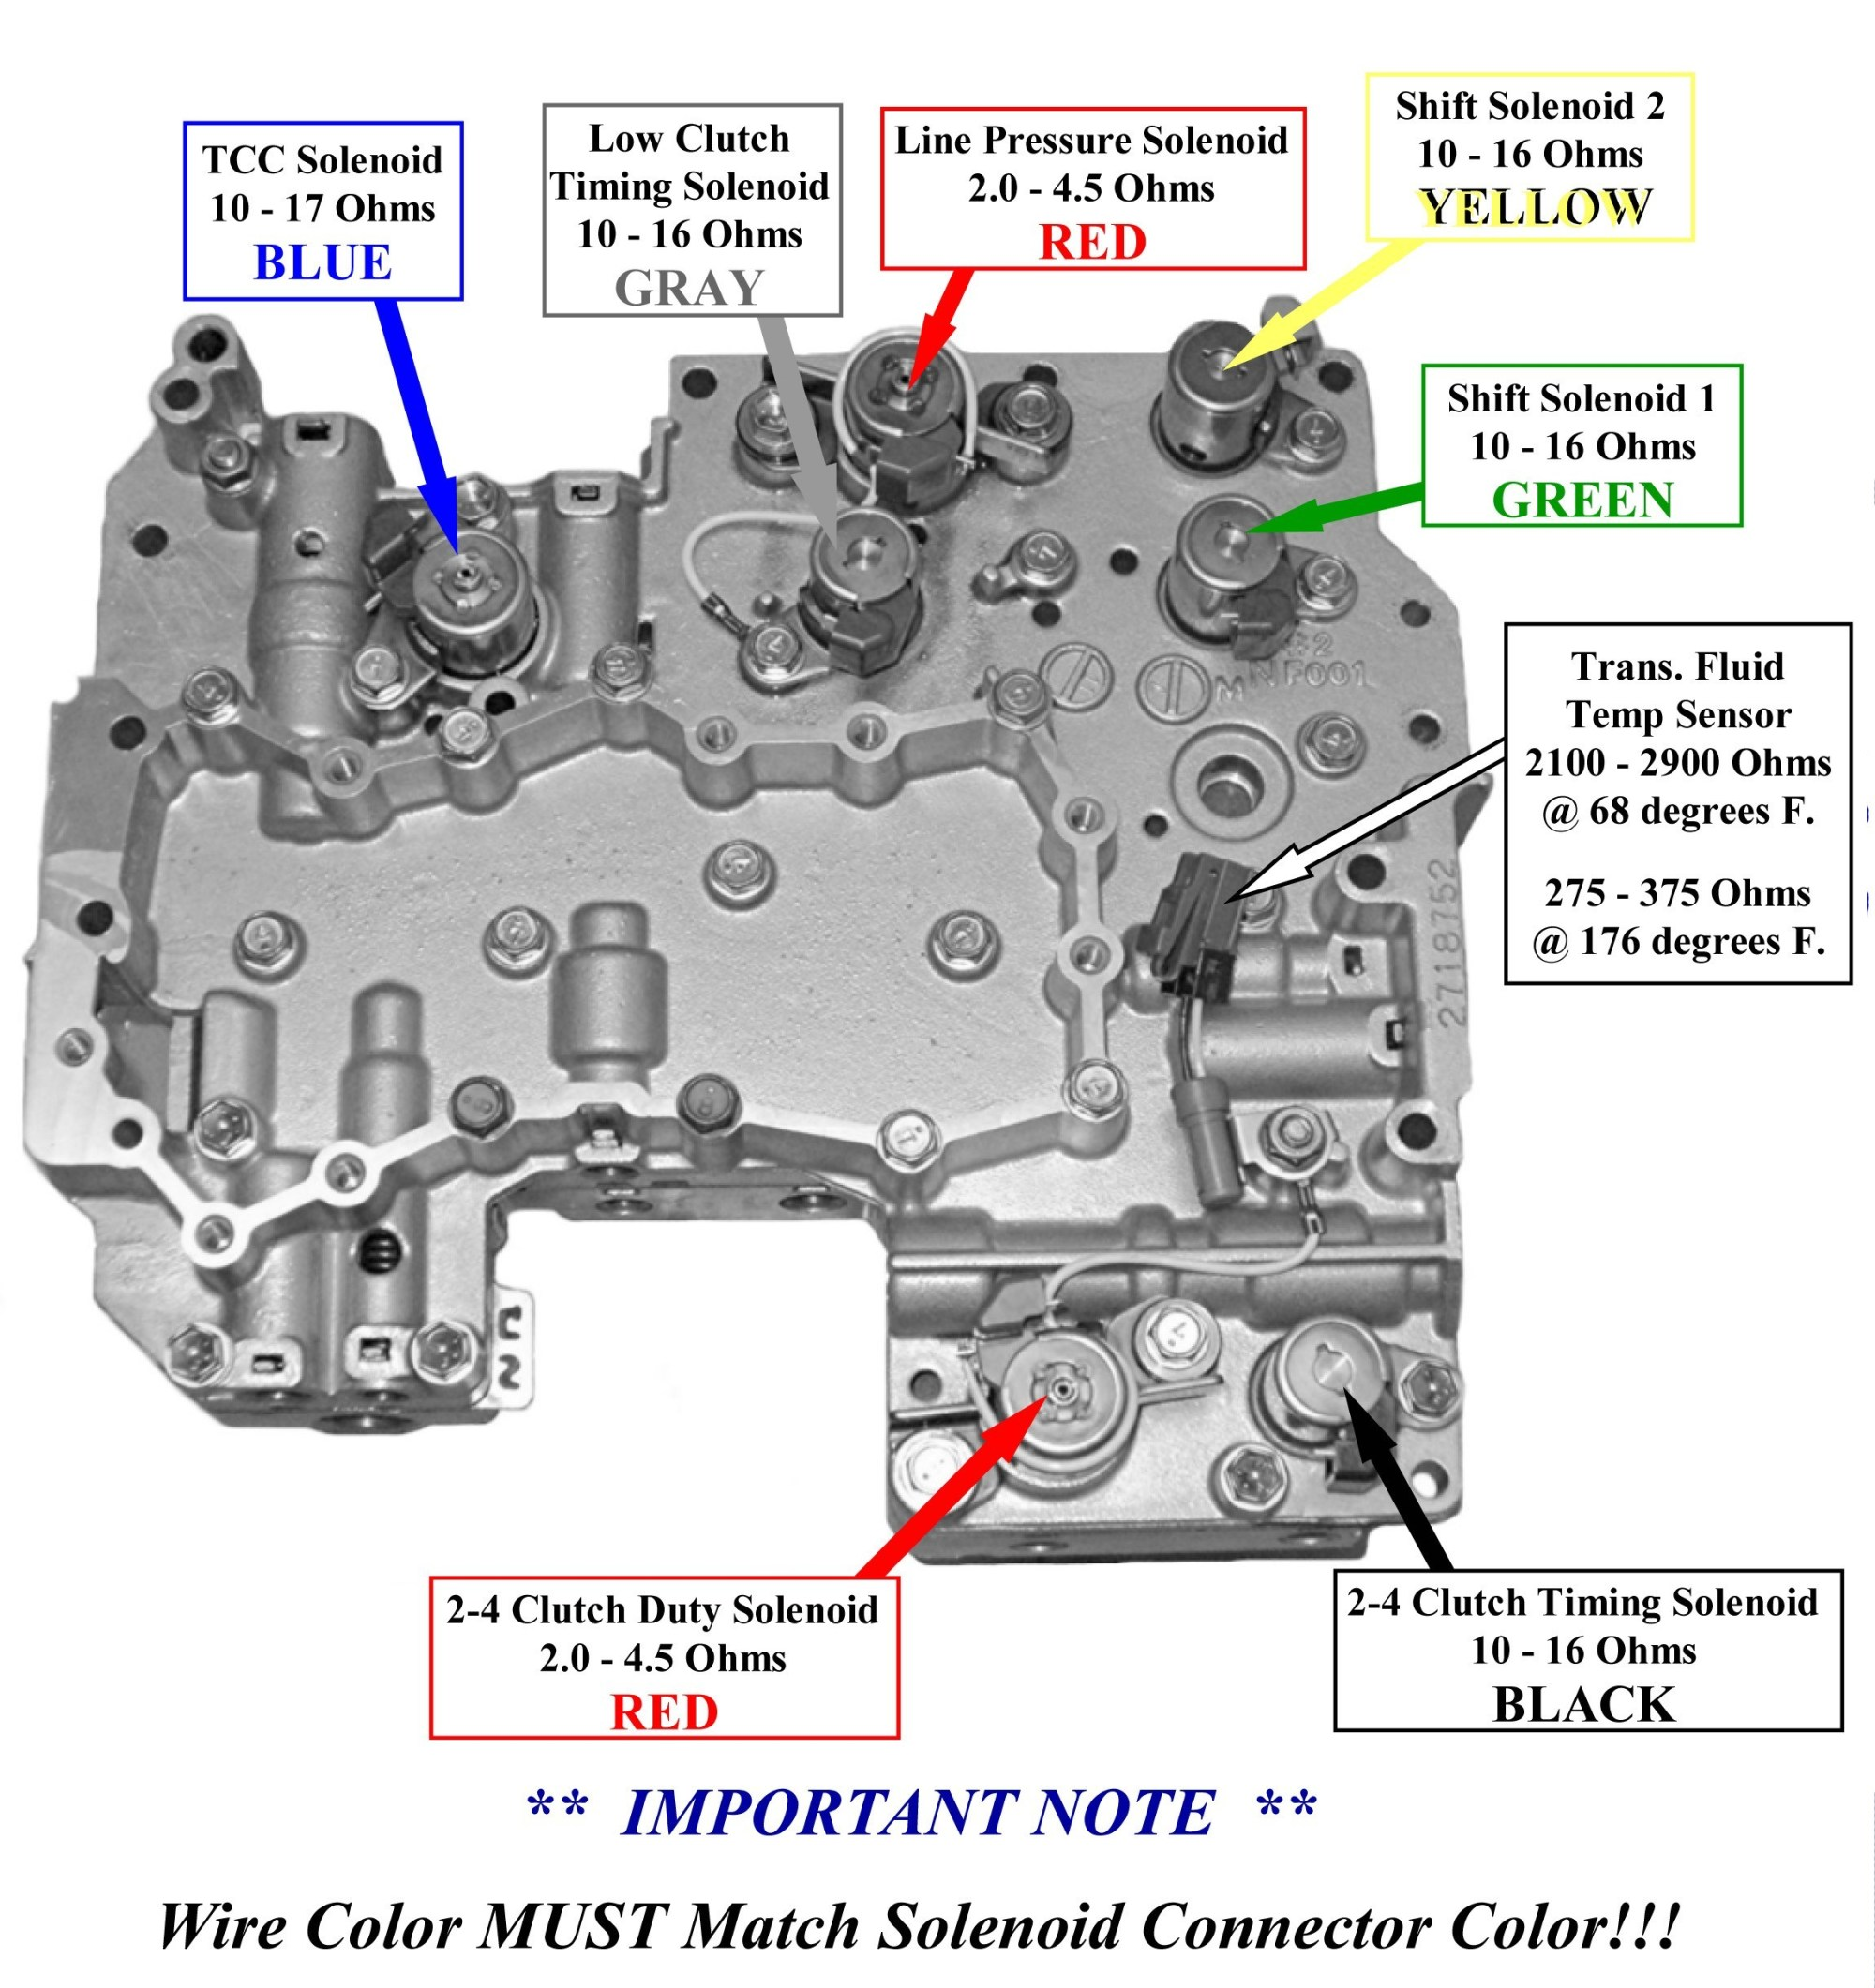 hight resolution of 4l30e clutch diagram trusted wiring diagrams u2022 rh 45 63 68 186 4l30e transmission